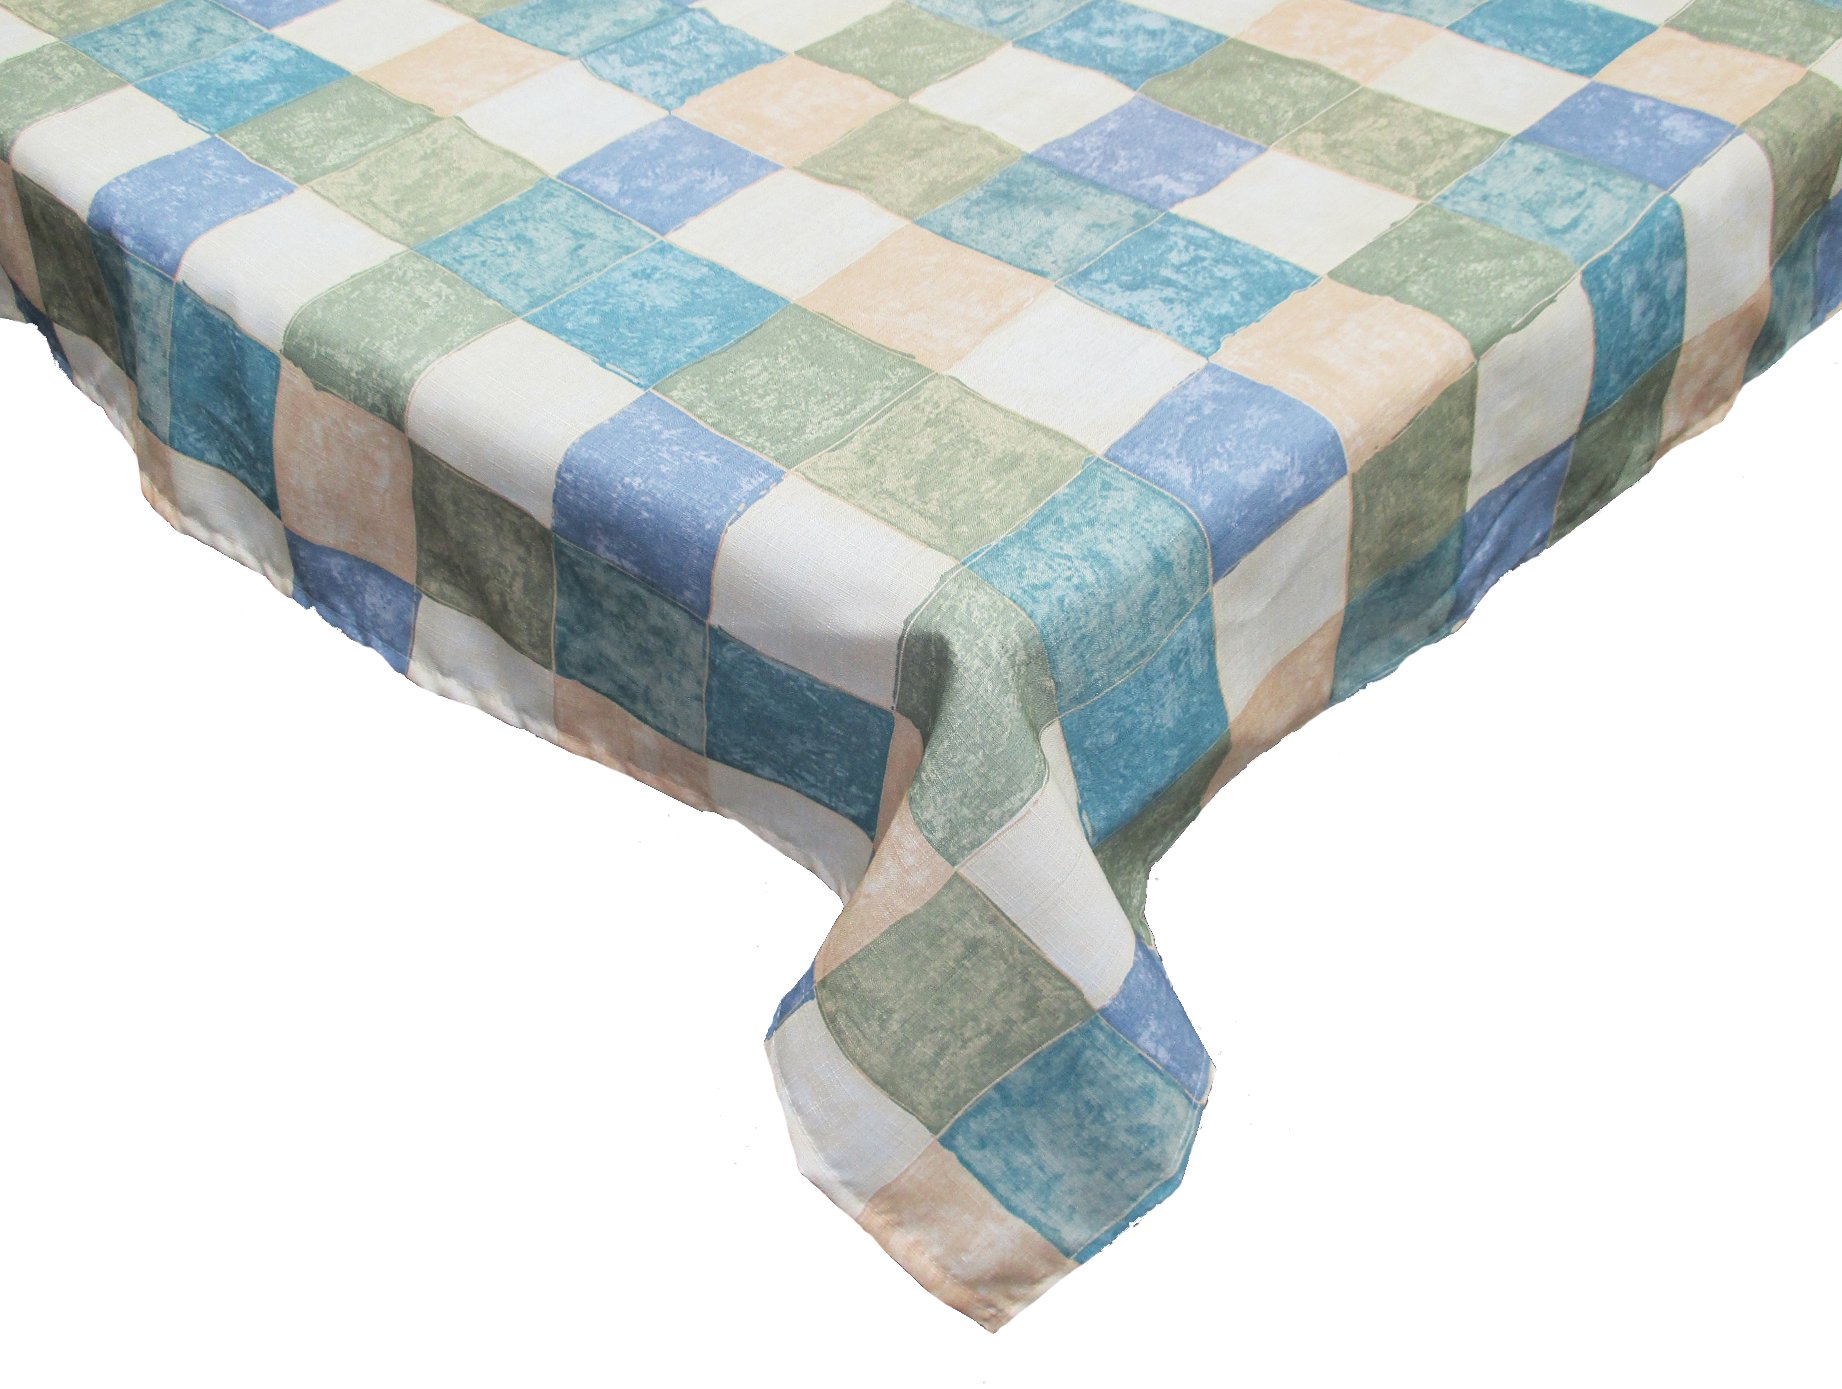 Waterproof Spill Proof Checkered Vinyl Round Tablecloth with Flannel back,  60'',  Perfect for Spring, Summer, Farmhouse Décor, Outdoor Picnics & Potlucks Party or Everyday Use-Tiles